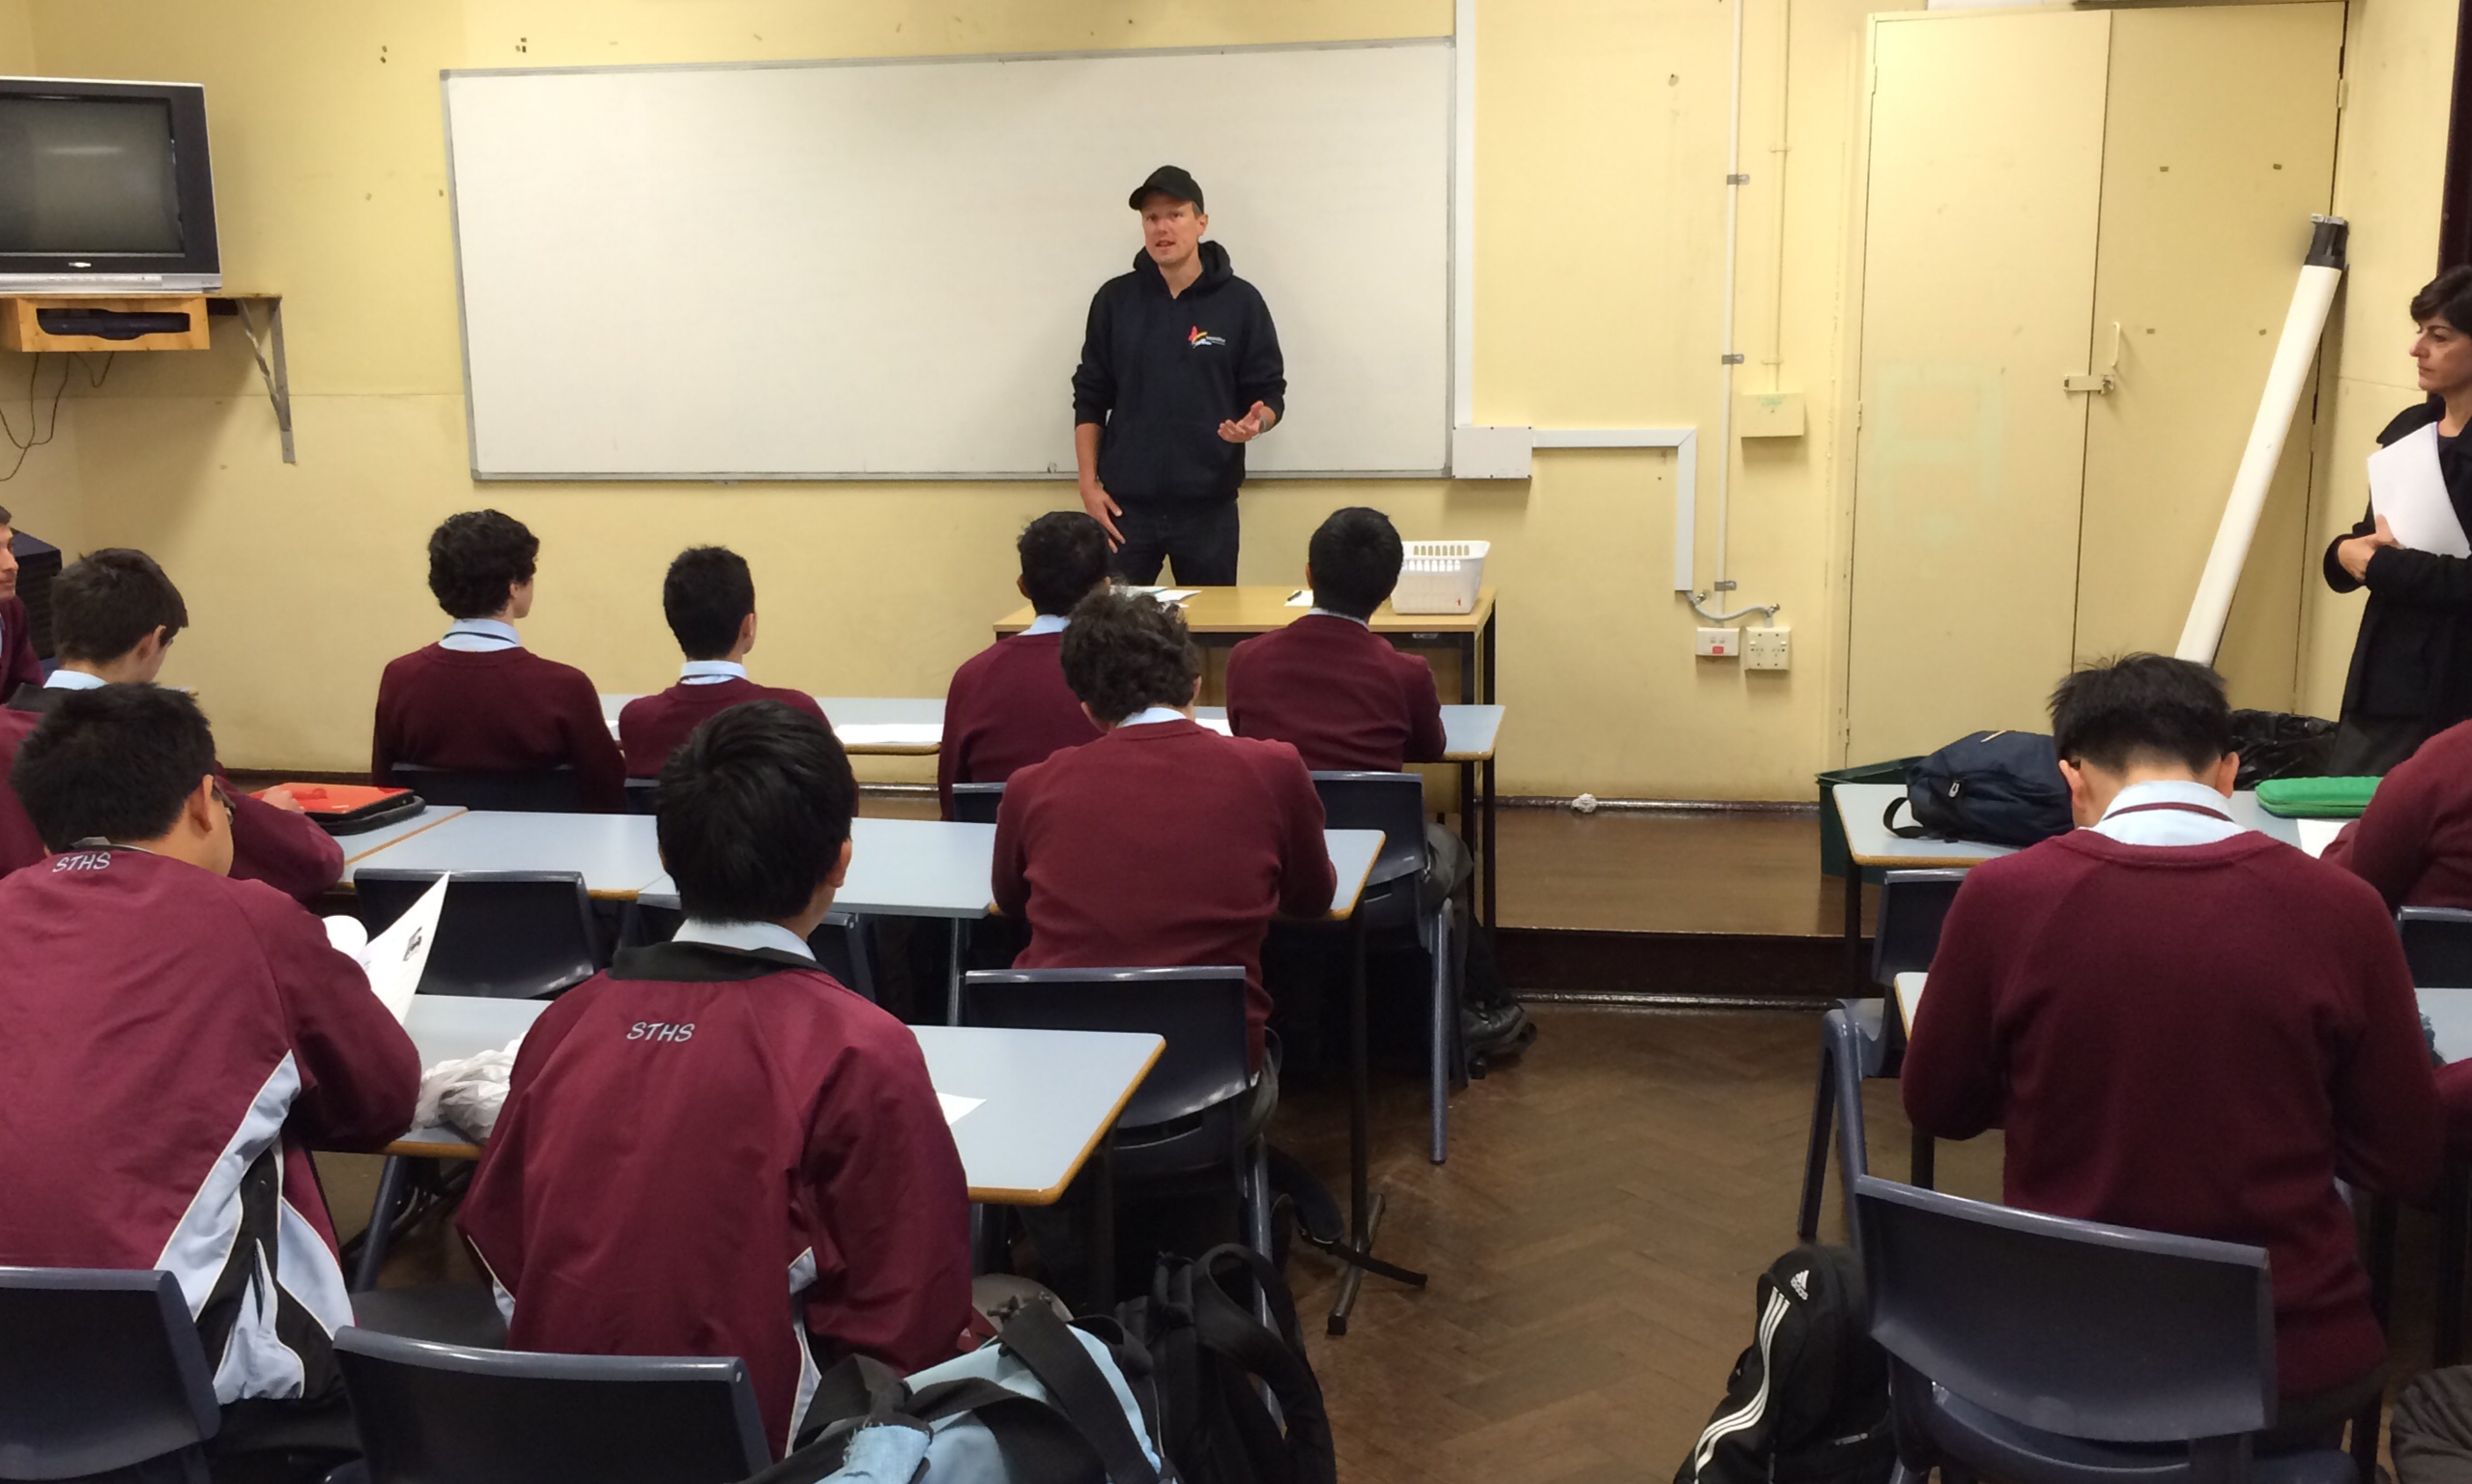 Talking to students at Sydney Technical High School.